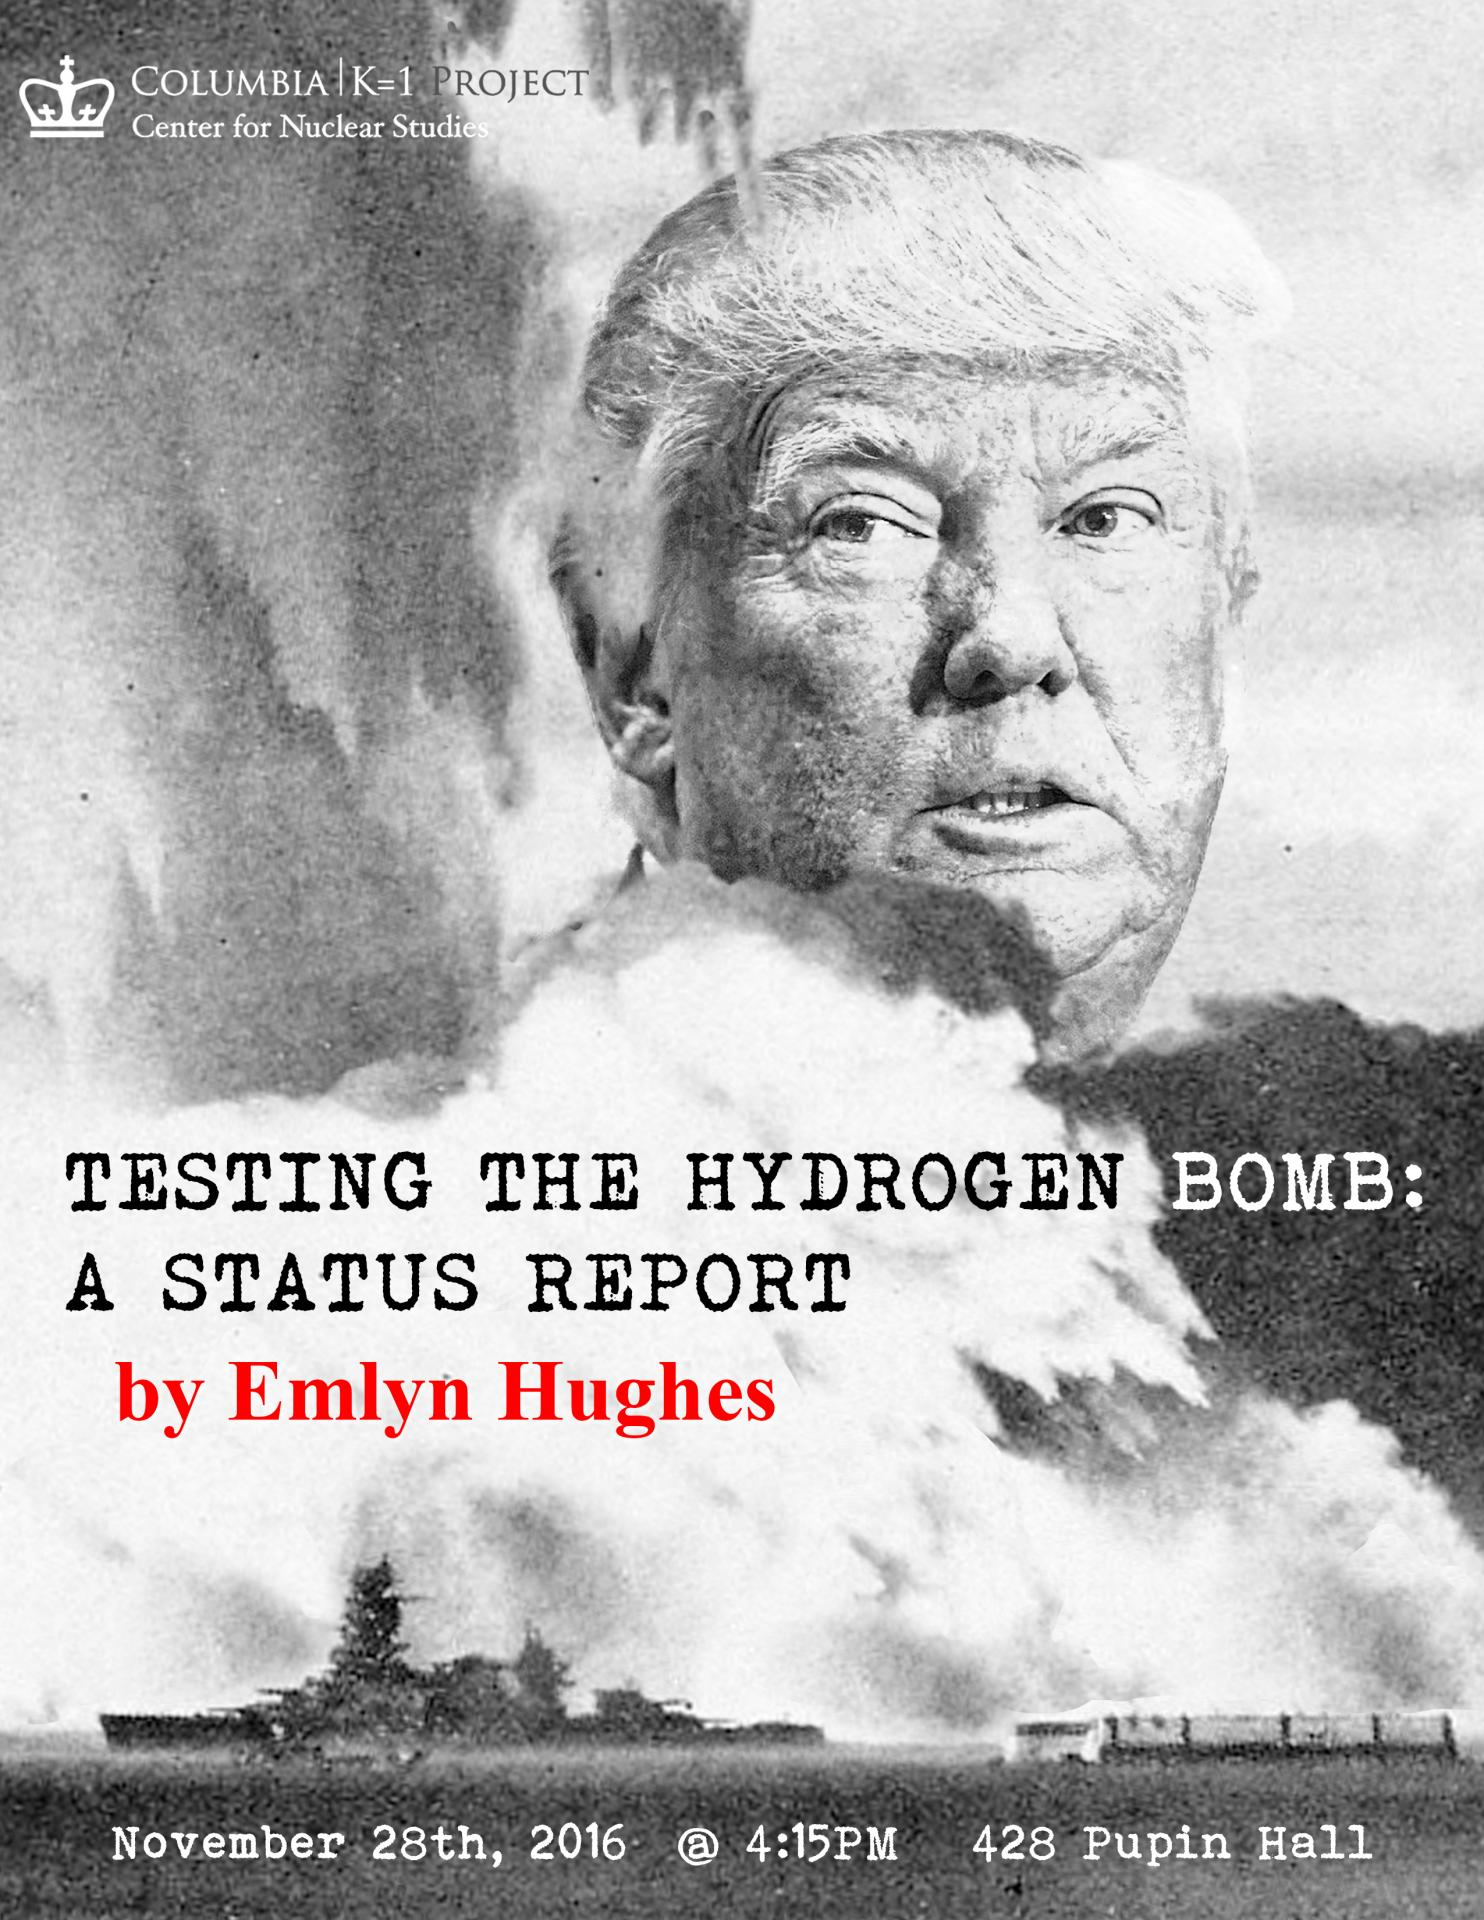 Testing the Hydrogen Bomb: A Status Report